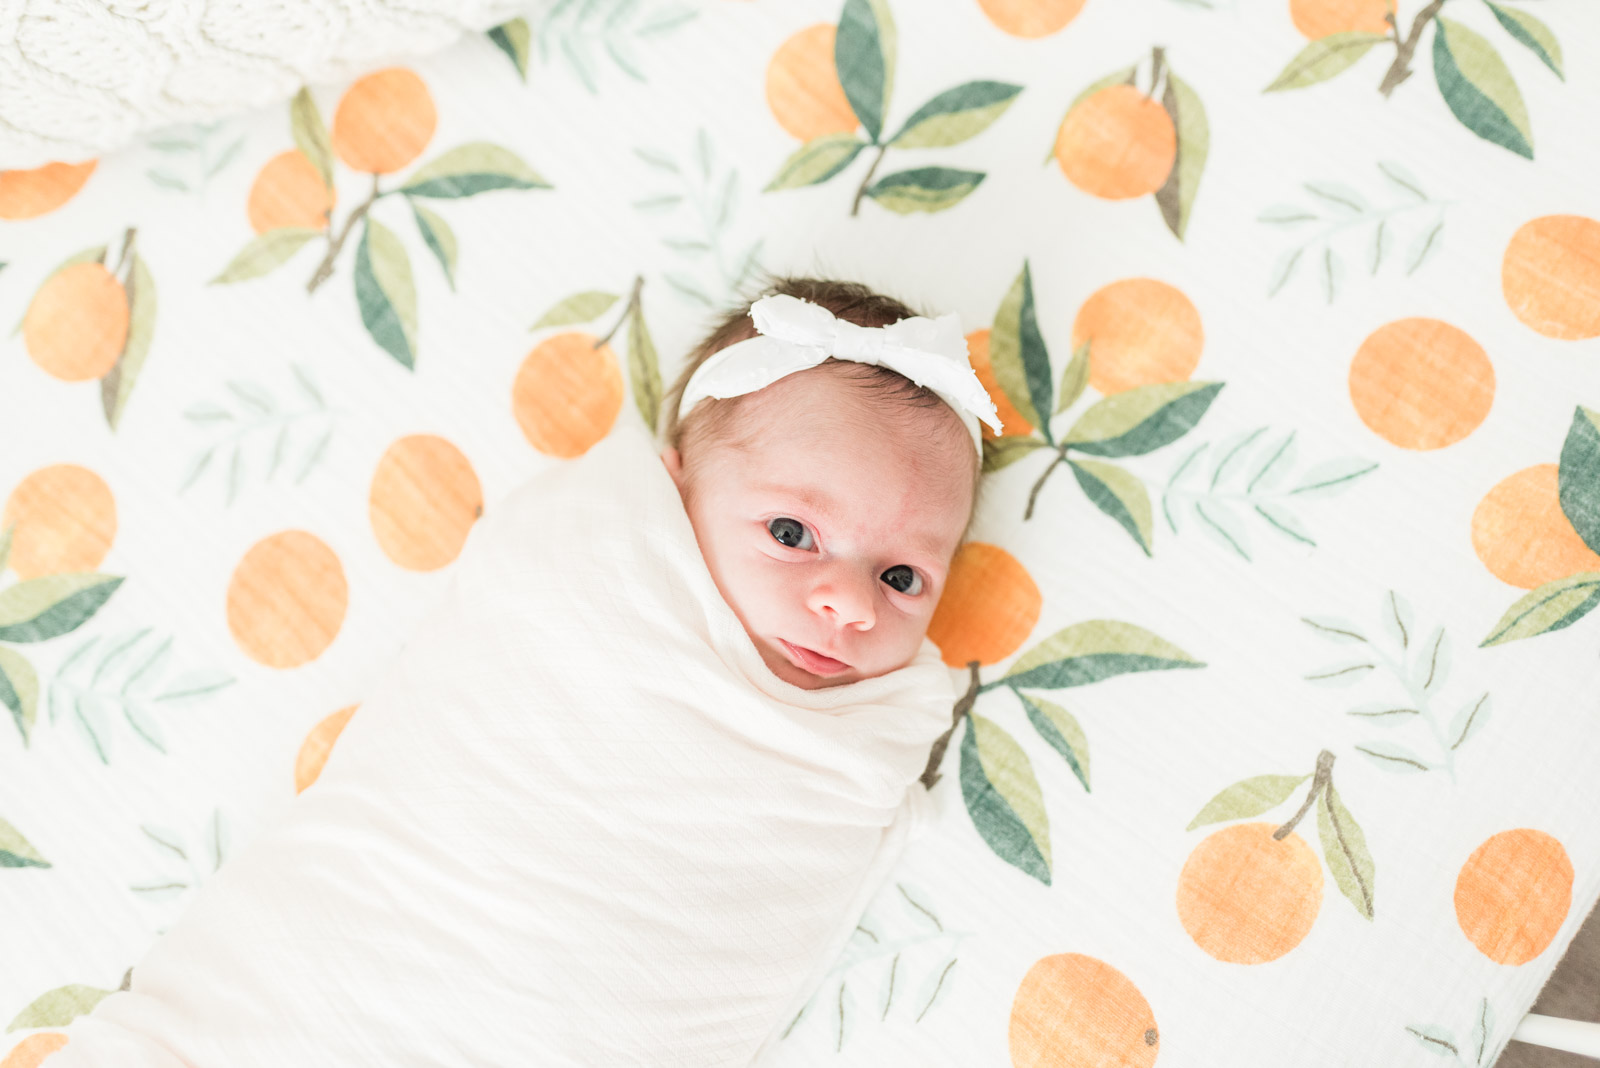 Baby Girls & Oranges Columbia, SC Newborn Session_Markie Walden Photography-30.jpg